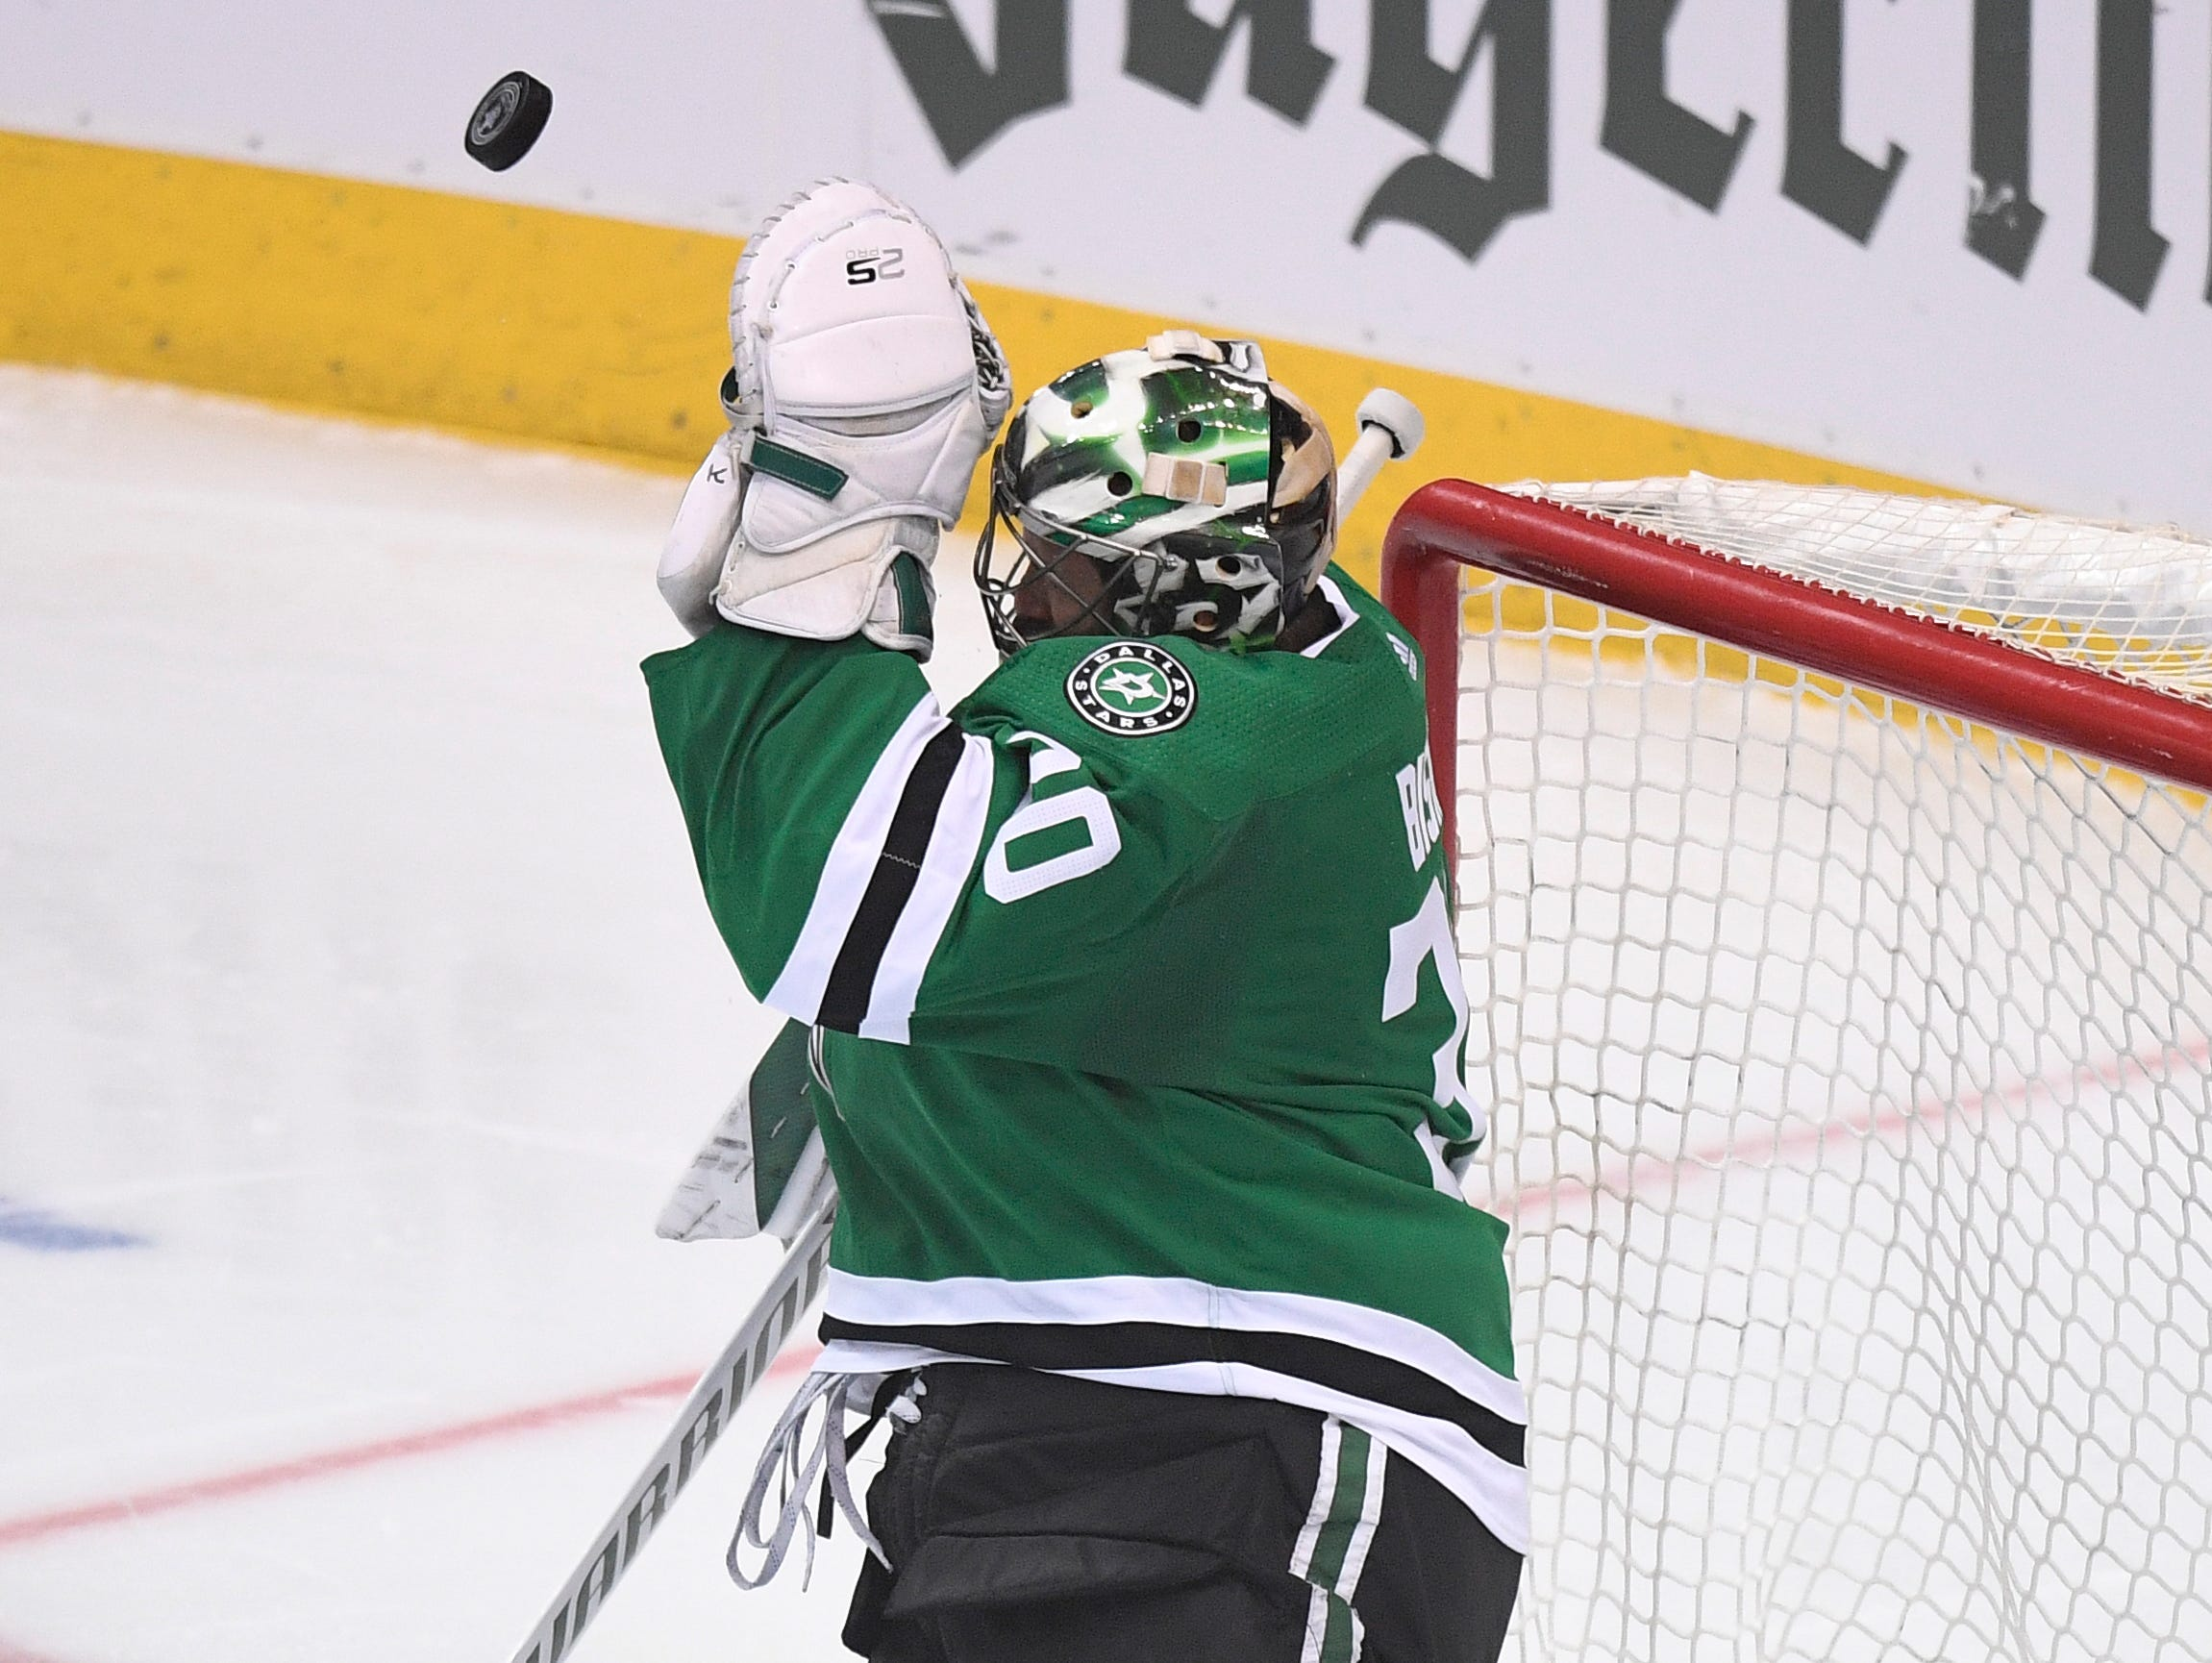 Dallas Stars goaltender Ben Bishop (30) stops a Predators shot during the third period of the divisional semifinal game at the American Airlines Center in Dallas, Texas., Monday, April 15, 2019.